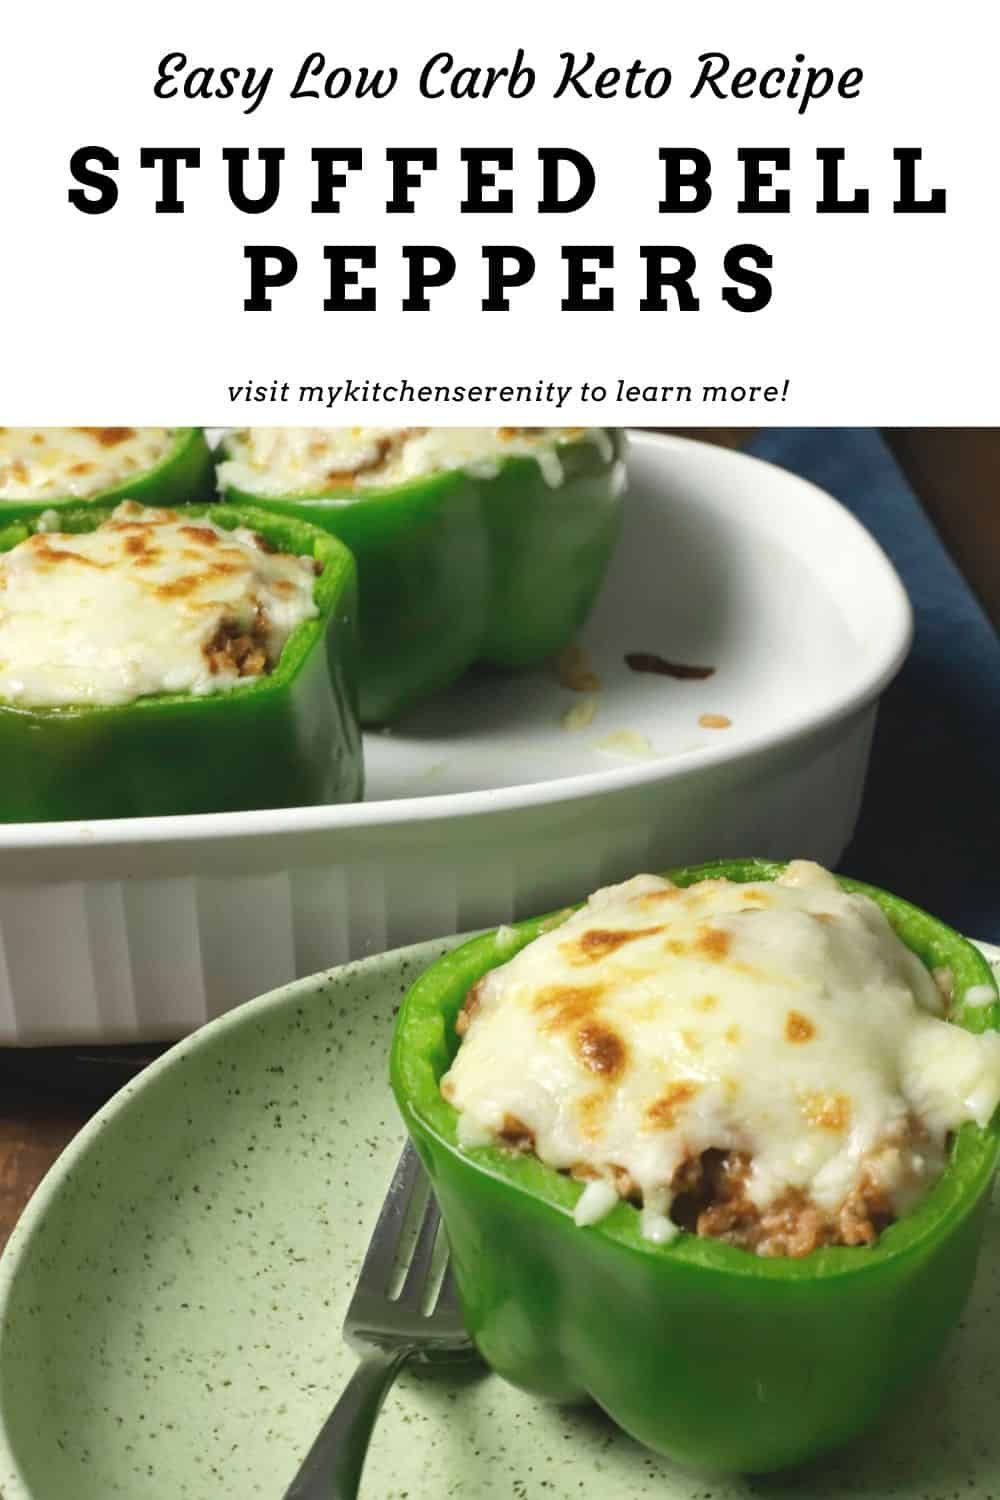 The Best Low Carb Stuffed Bell Peppers Ground Beef Creamy Tomato Sauce And Cauliflower Rice Baked In 2020 Stuffed Peppers Stuffed Bell Peppers Low Carb Keto Recipes